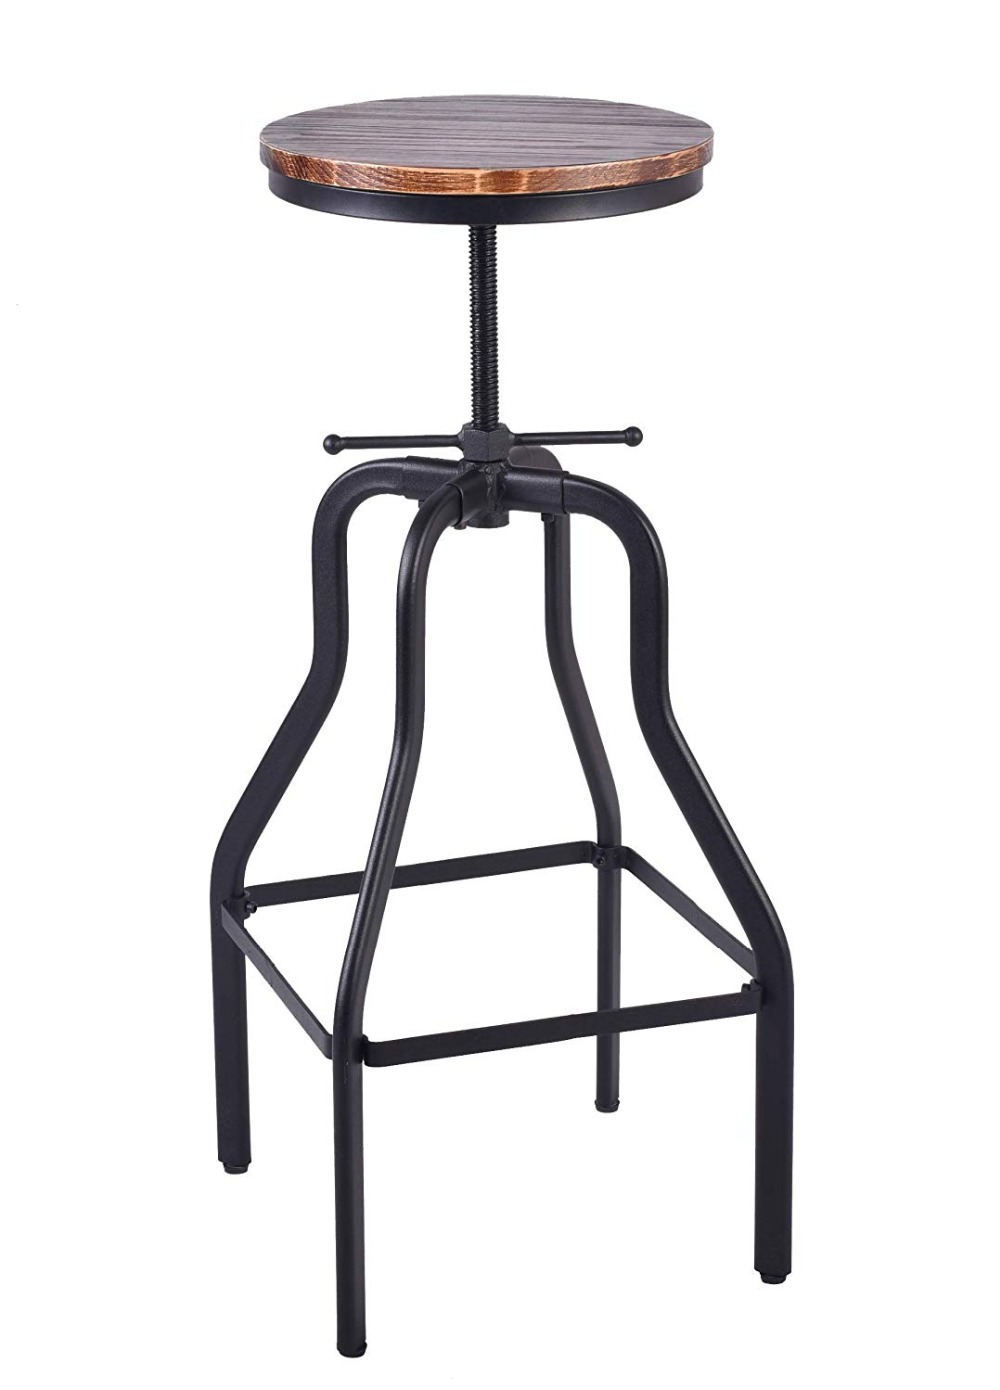 Wondrous Us 60 0 Vintage Bar Stool Round Swivel Wood Seat And Metal Height Adjustable Industrial Look Swivel Bar Chairs In Bar Chairs From Furniture On Short Links Chair Design For Home Short Linksinfo